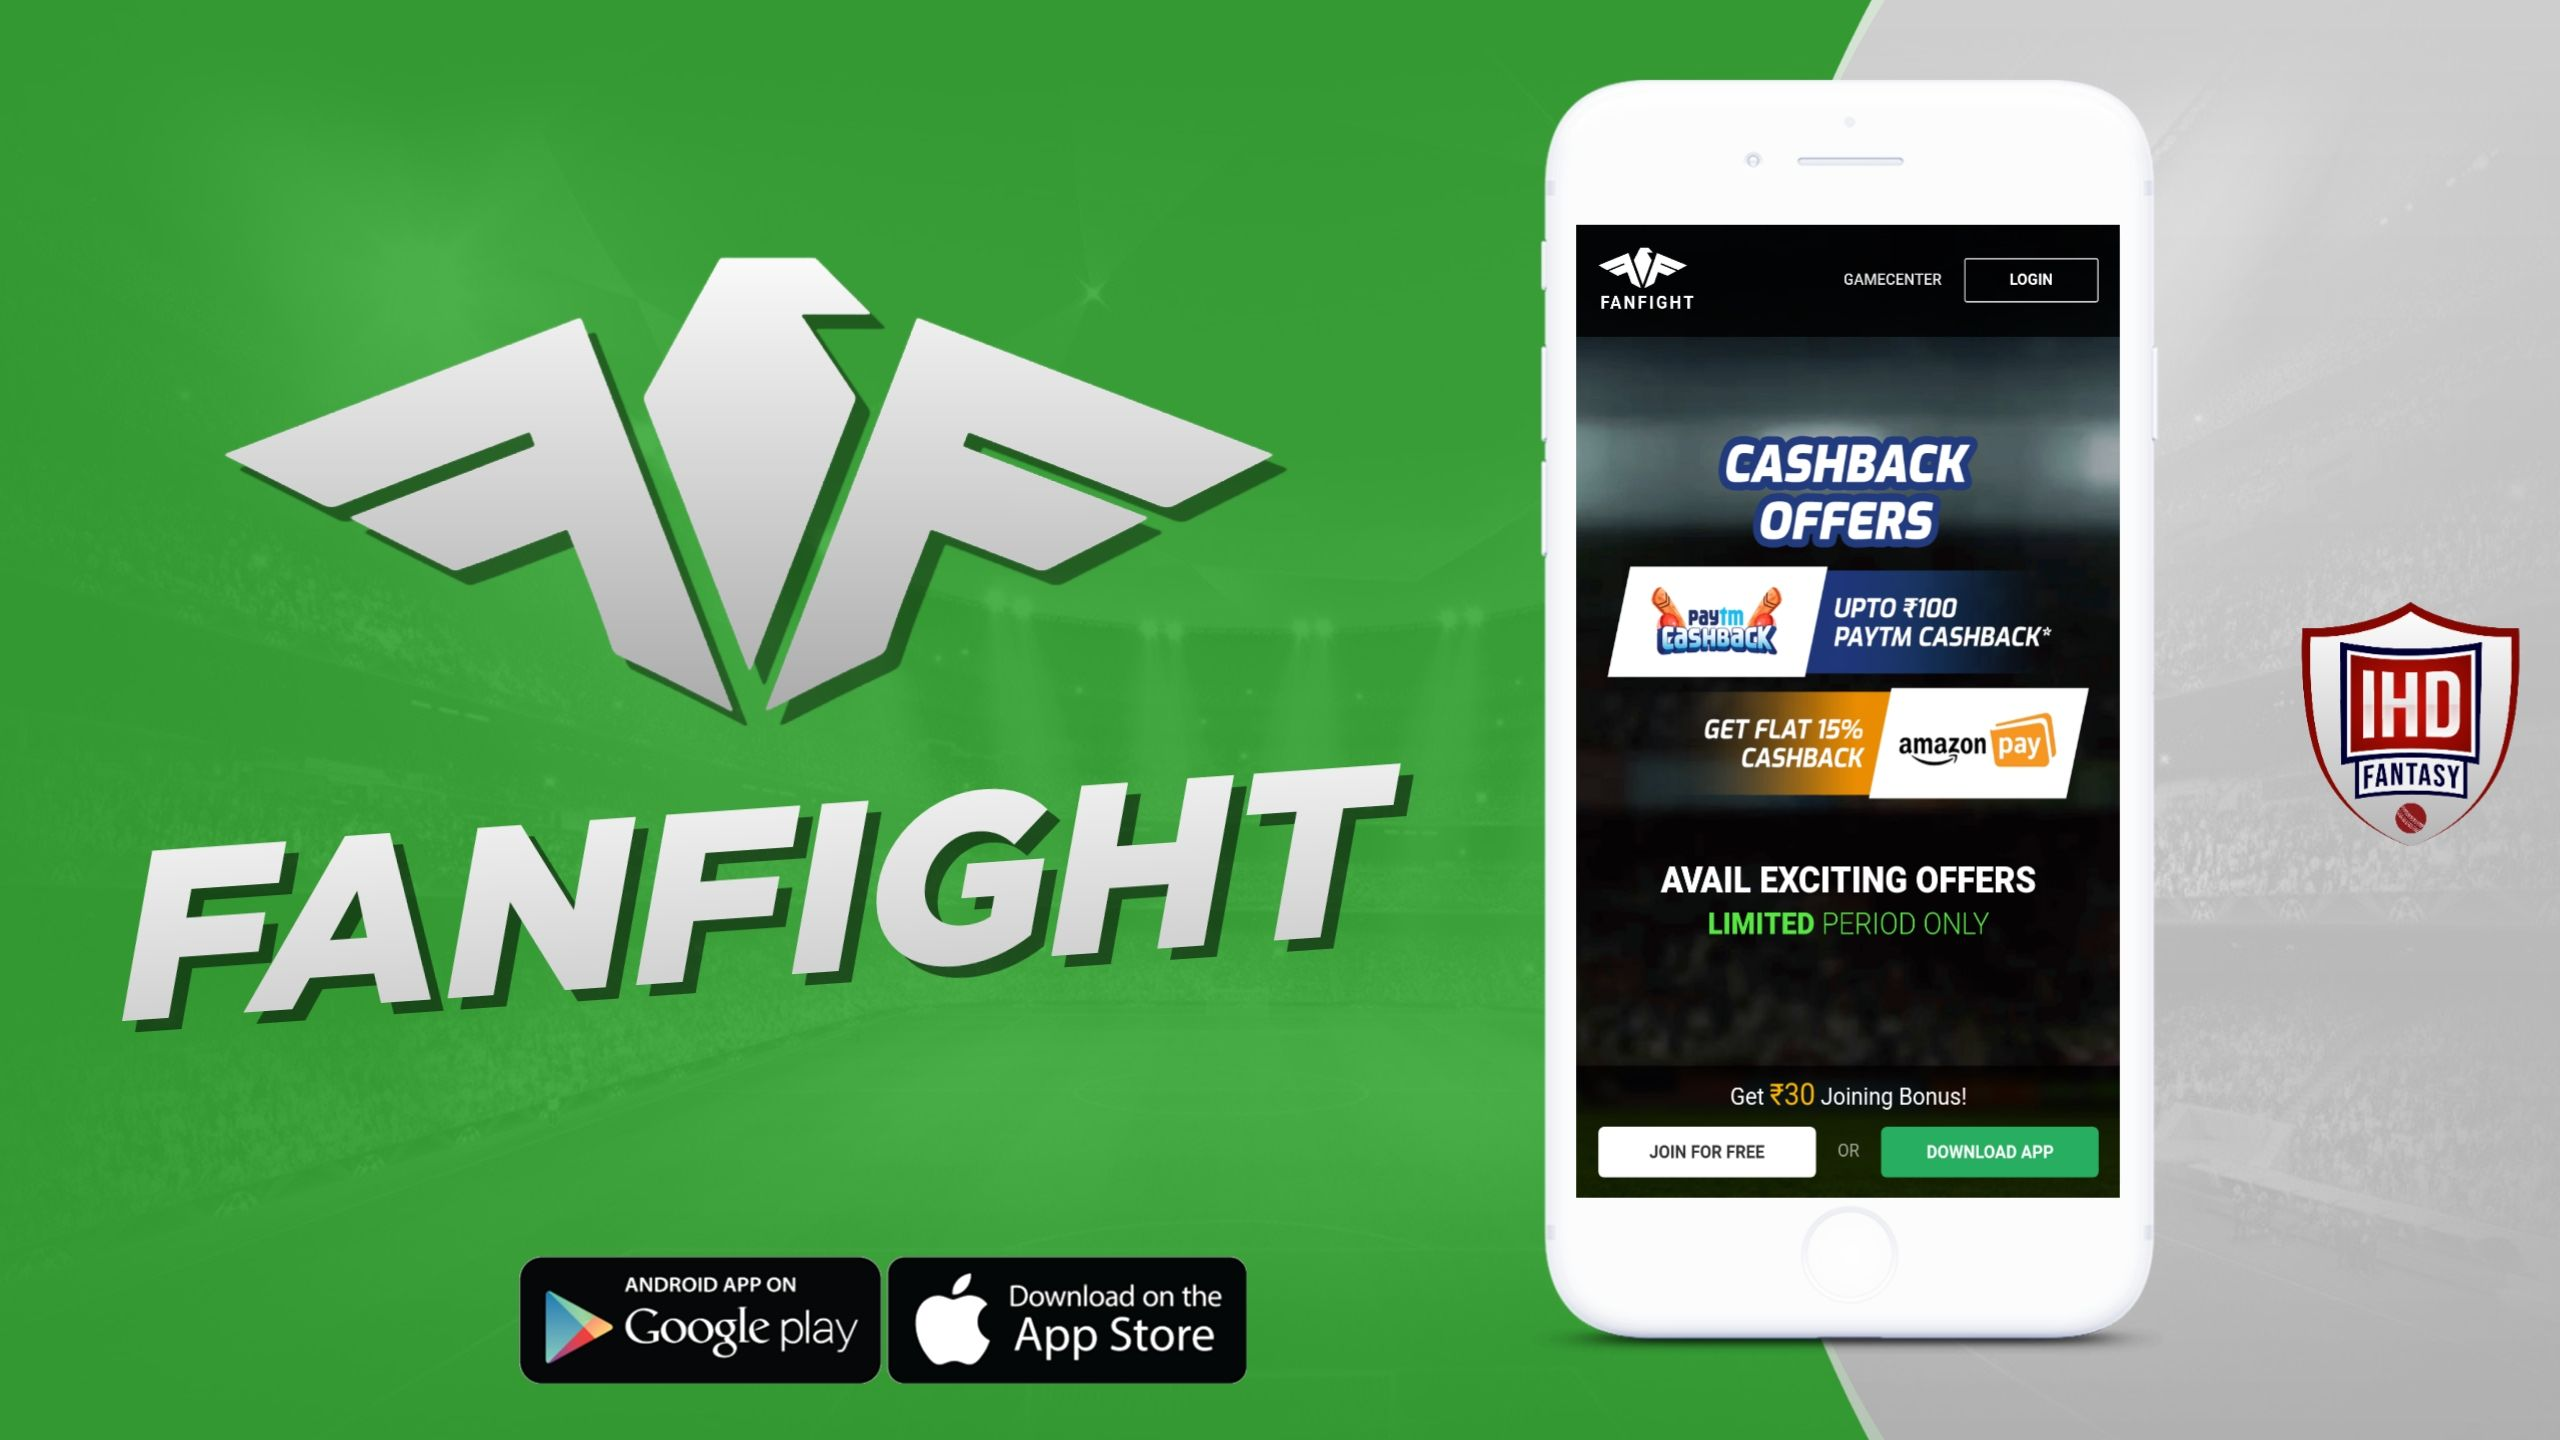 Fanfight Referral Code 2020, Download Latest APK & Get